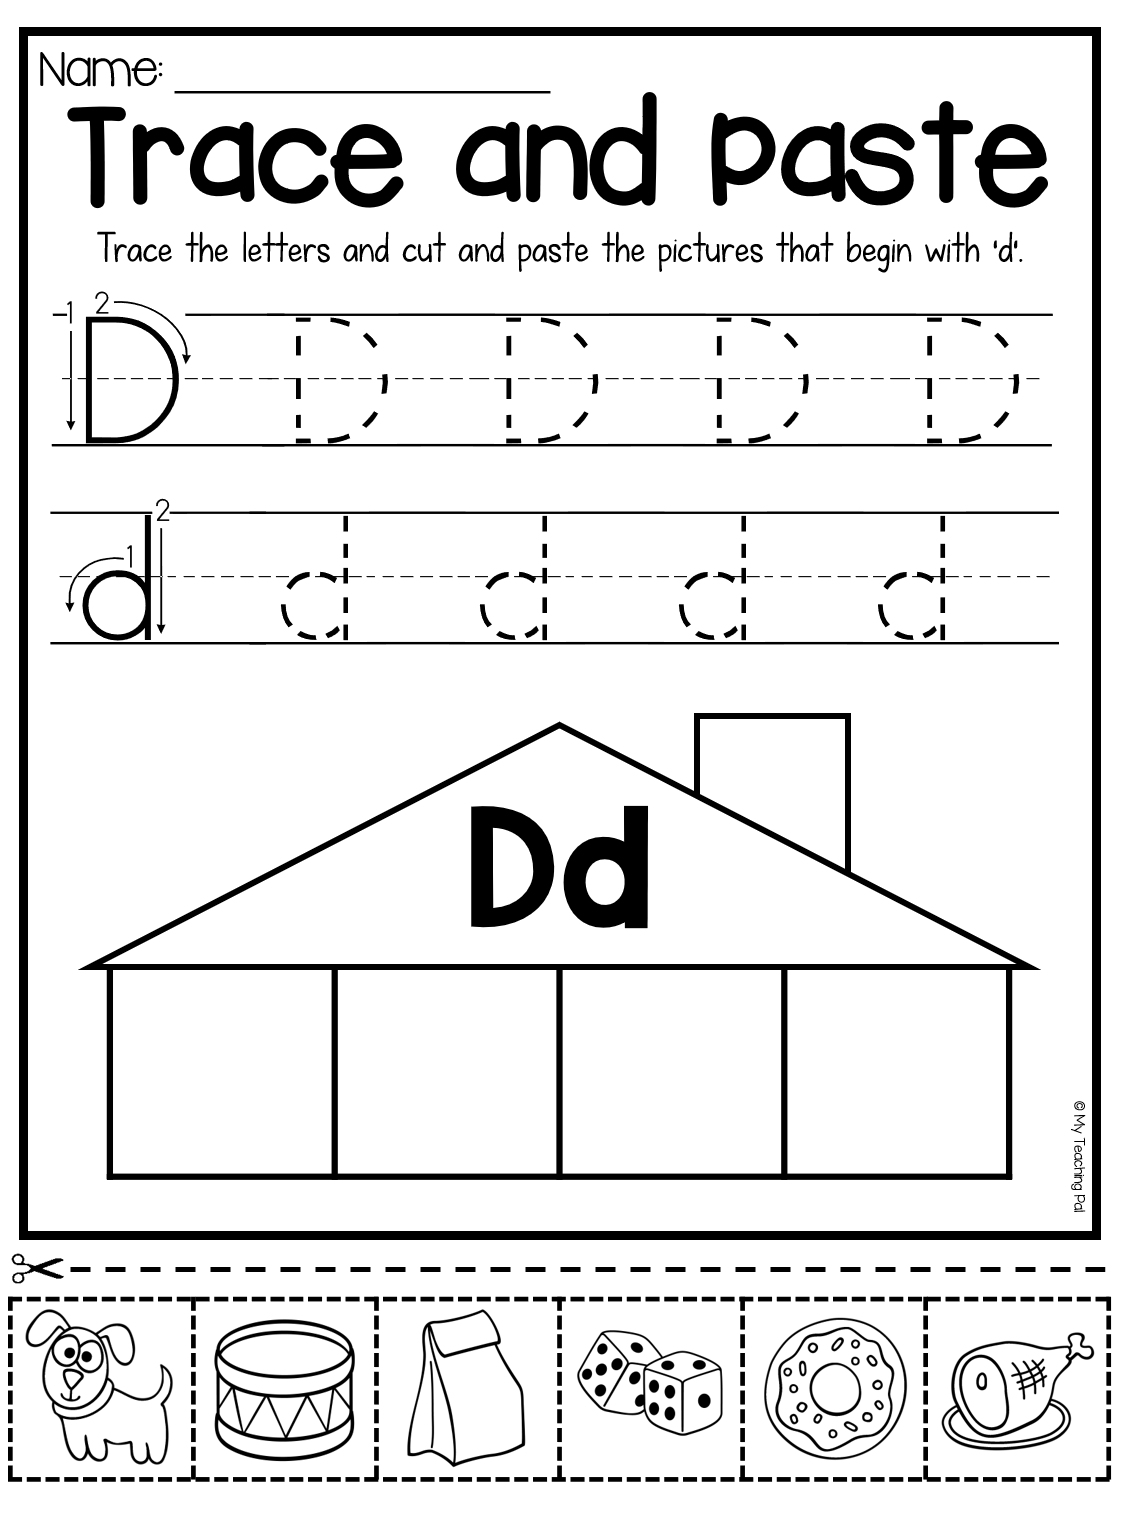 Trace And Paste Alphabet Worksheets Letter D Worksheet